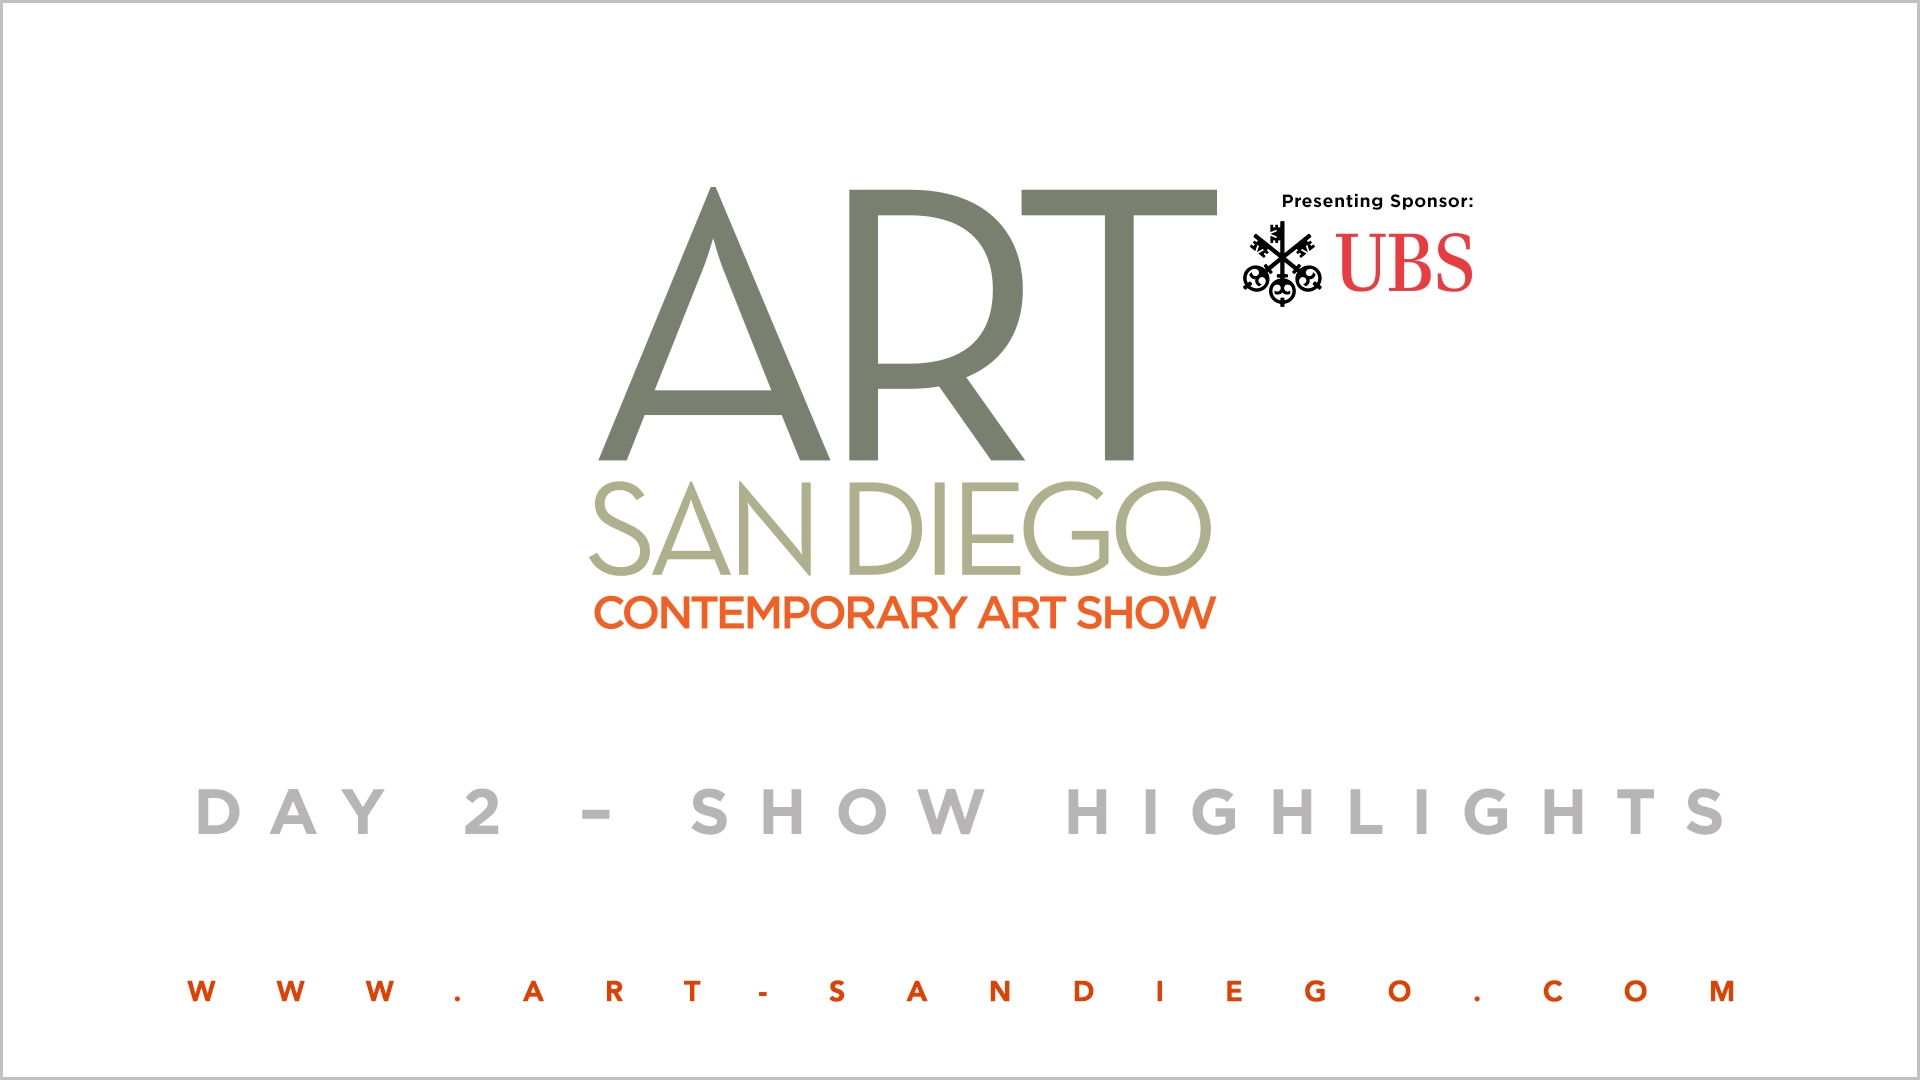 Art San Diego 2016 - Day 2 Highlights